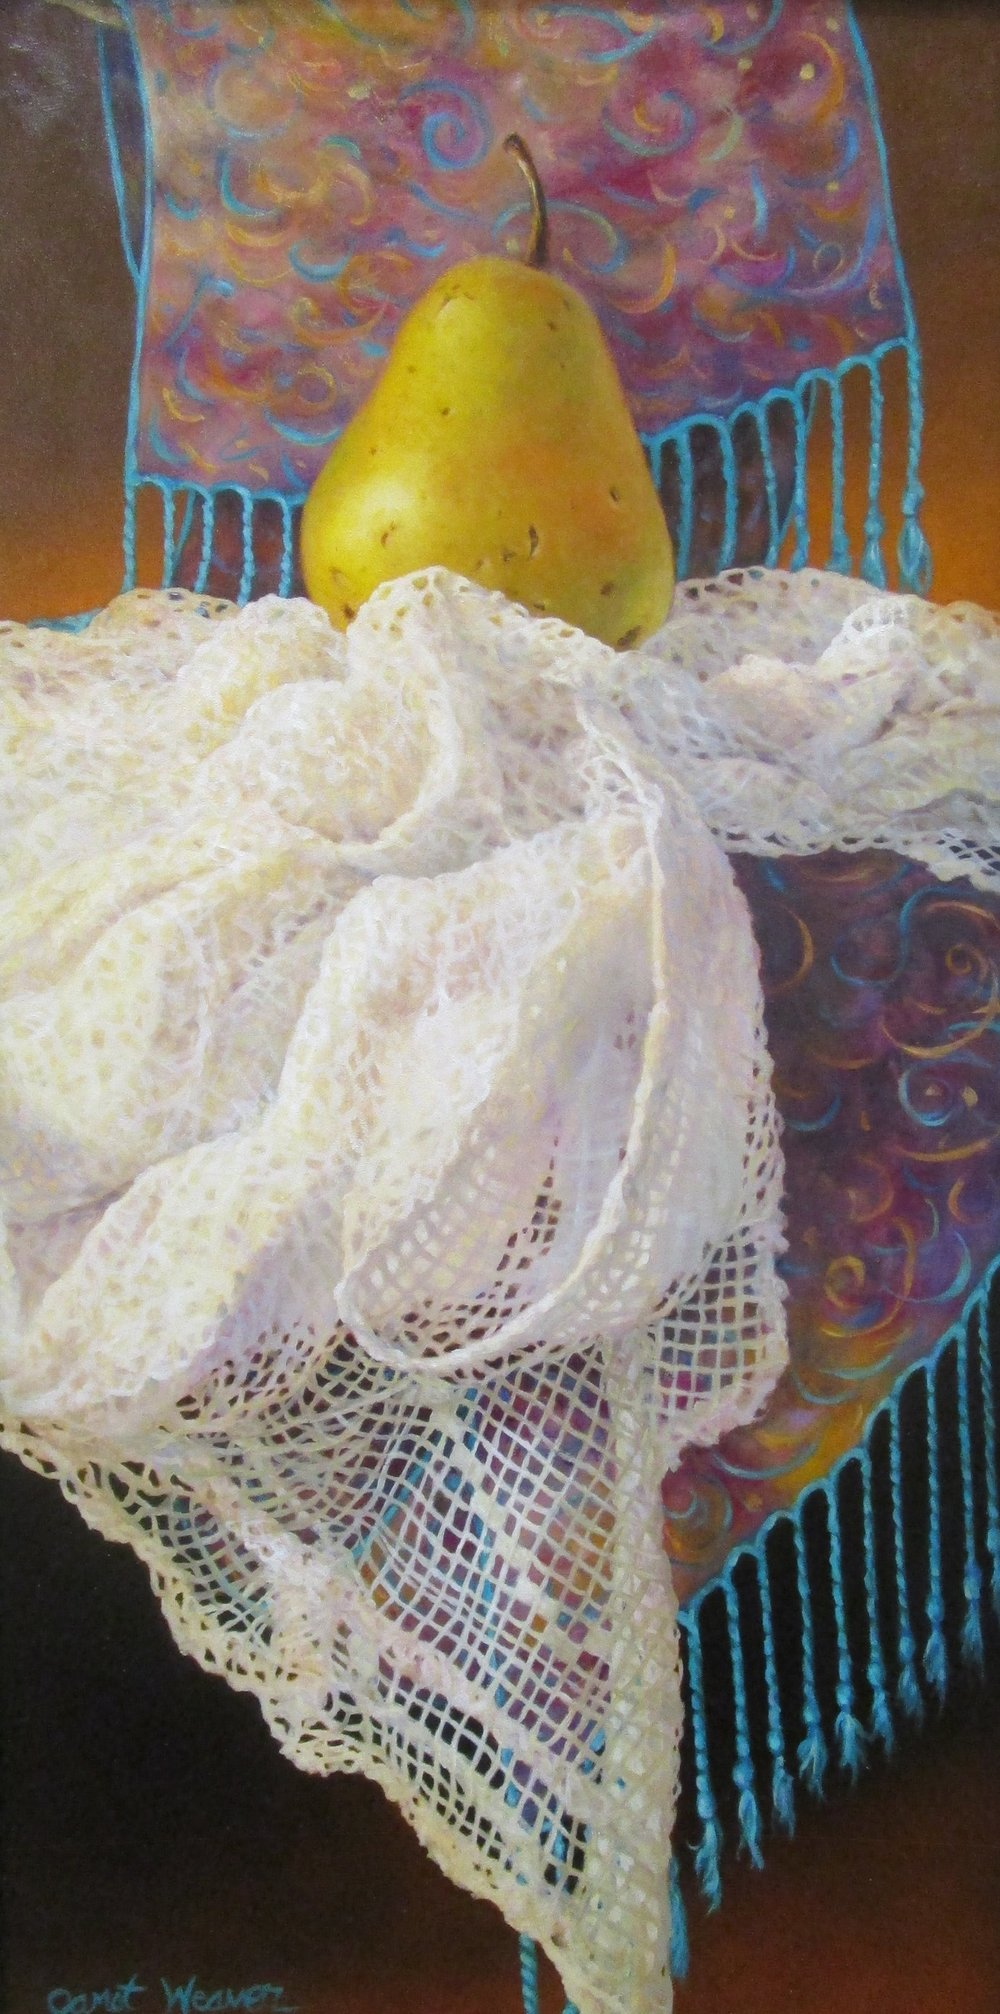 BoHo Pears No.4 - By Janet Weaver12 x 24 Oil on Board, Framed $995Come view an amazing show by Cottonwood Artist Janet Weaver.  With over 30 paintings on display, her awe-inspiring, hyper realistic oil paintings have a huge presence in our gallery!